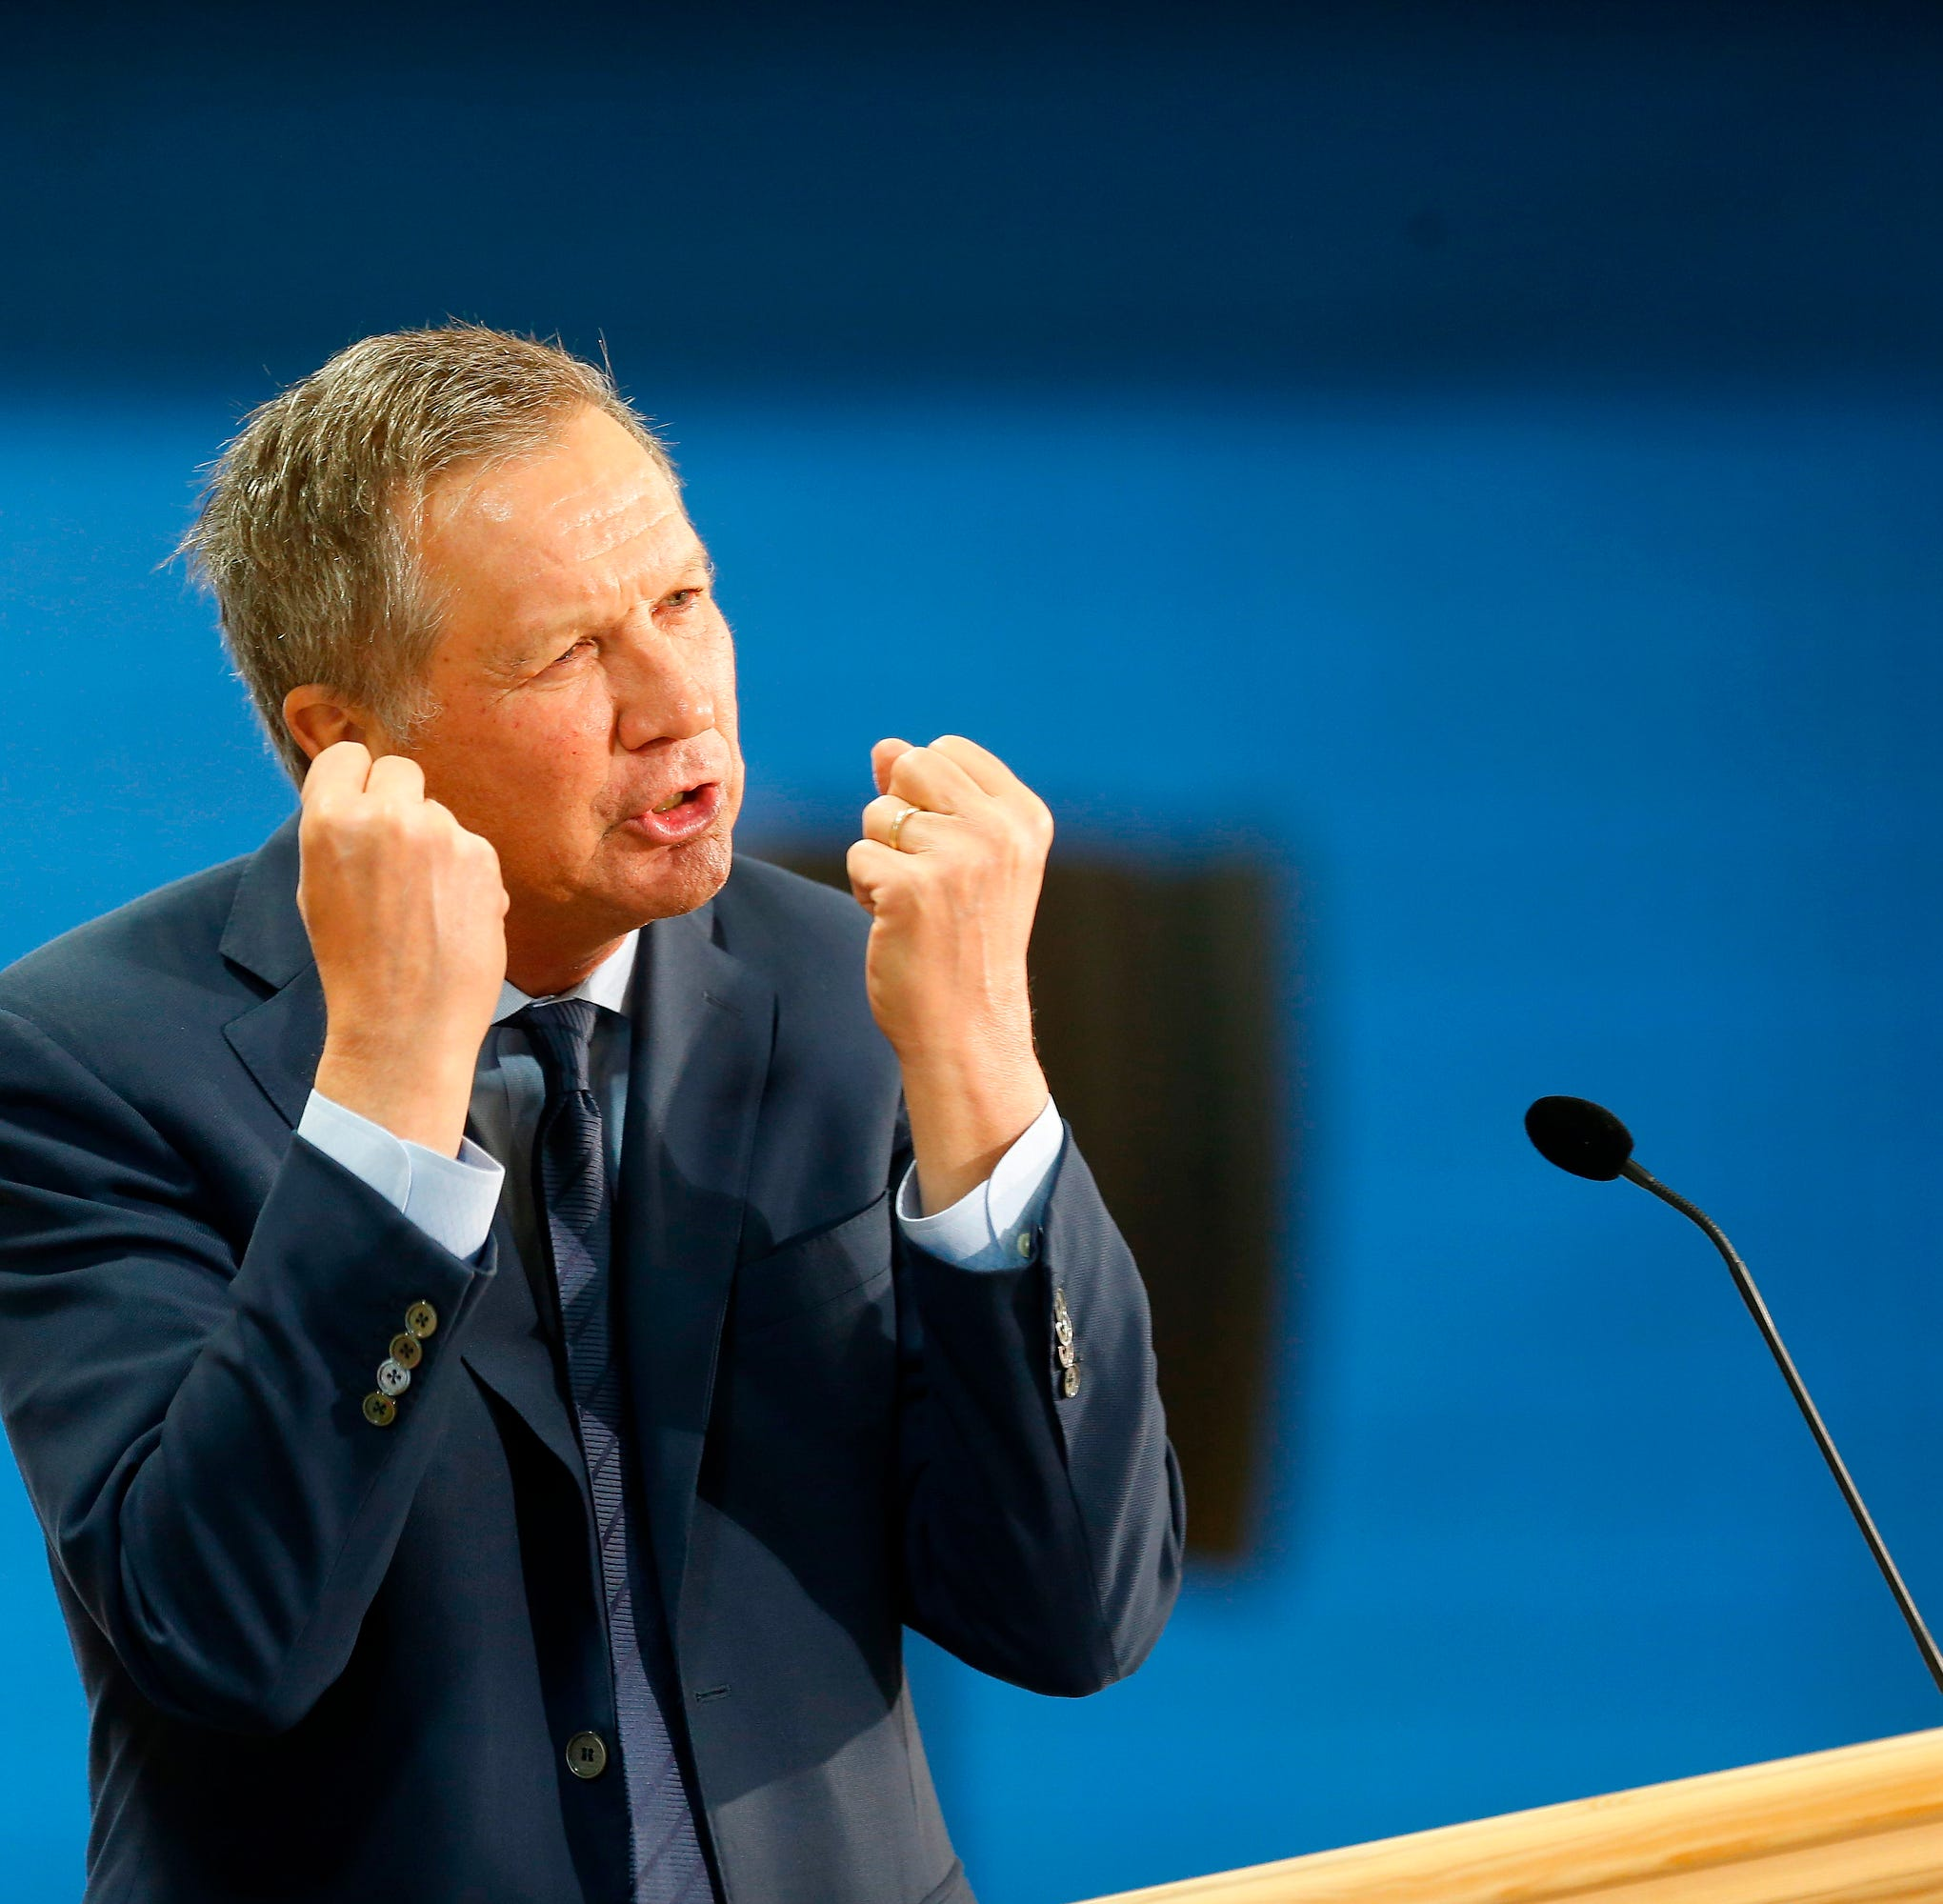 Kasich: Republican Party is mired in the 1950s and ignores today's America at its peril